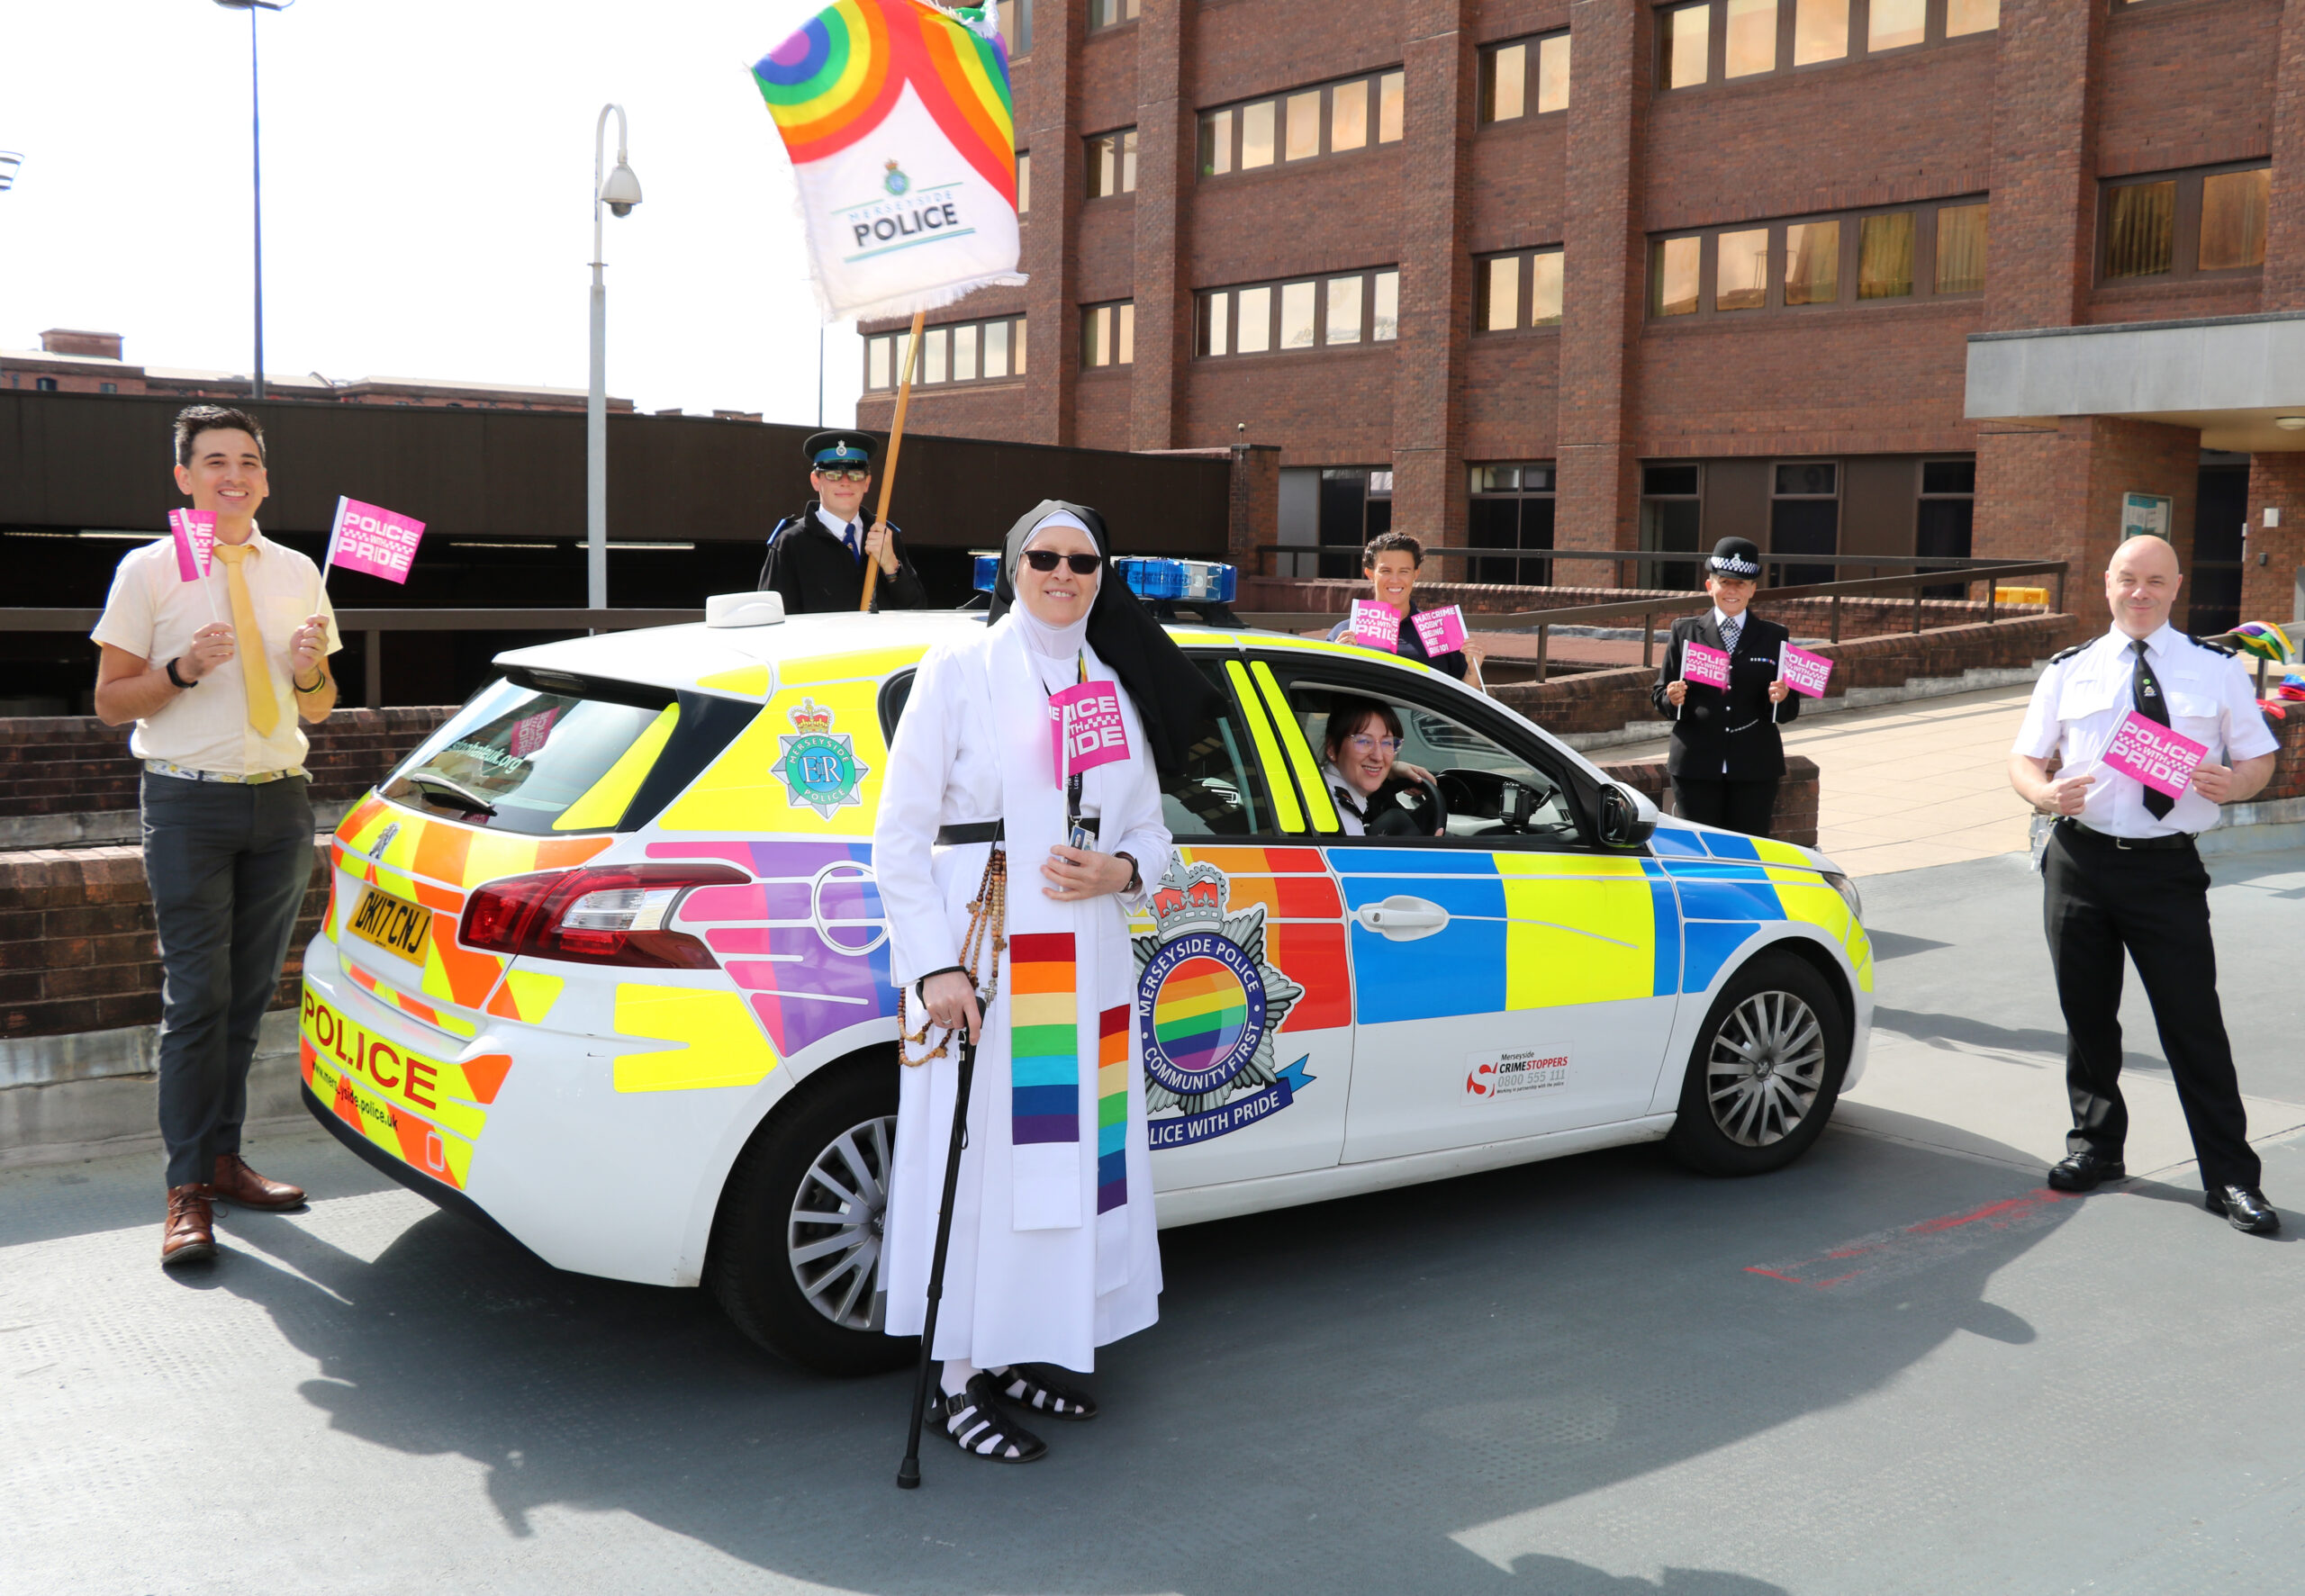 Pride Car with group and Flags.jpg